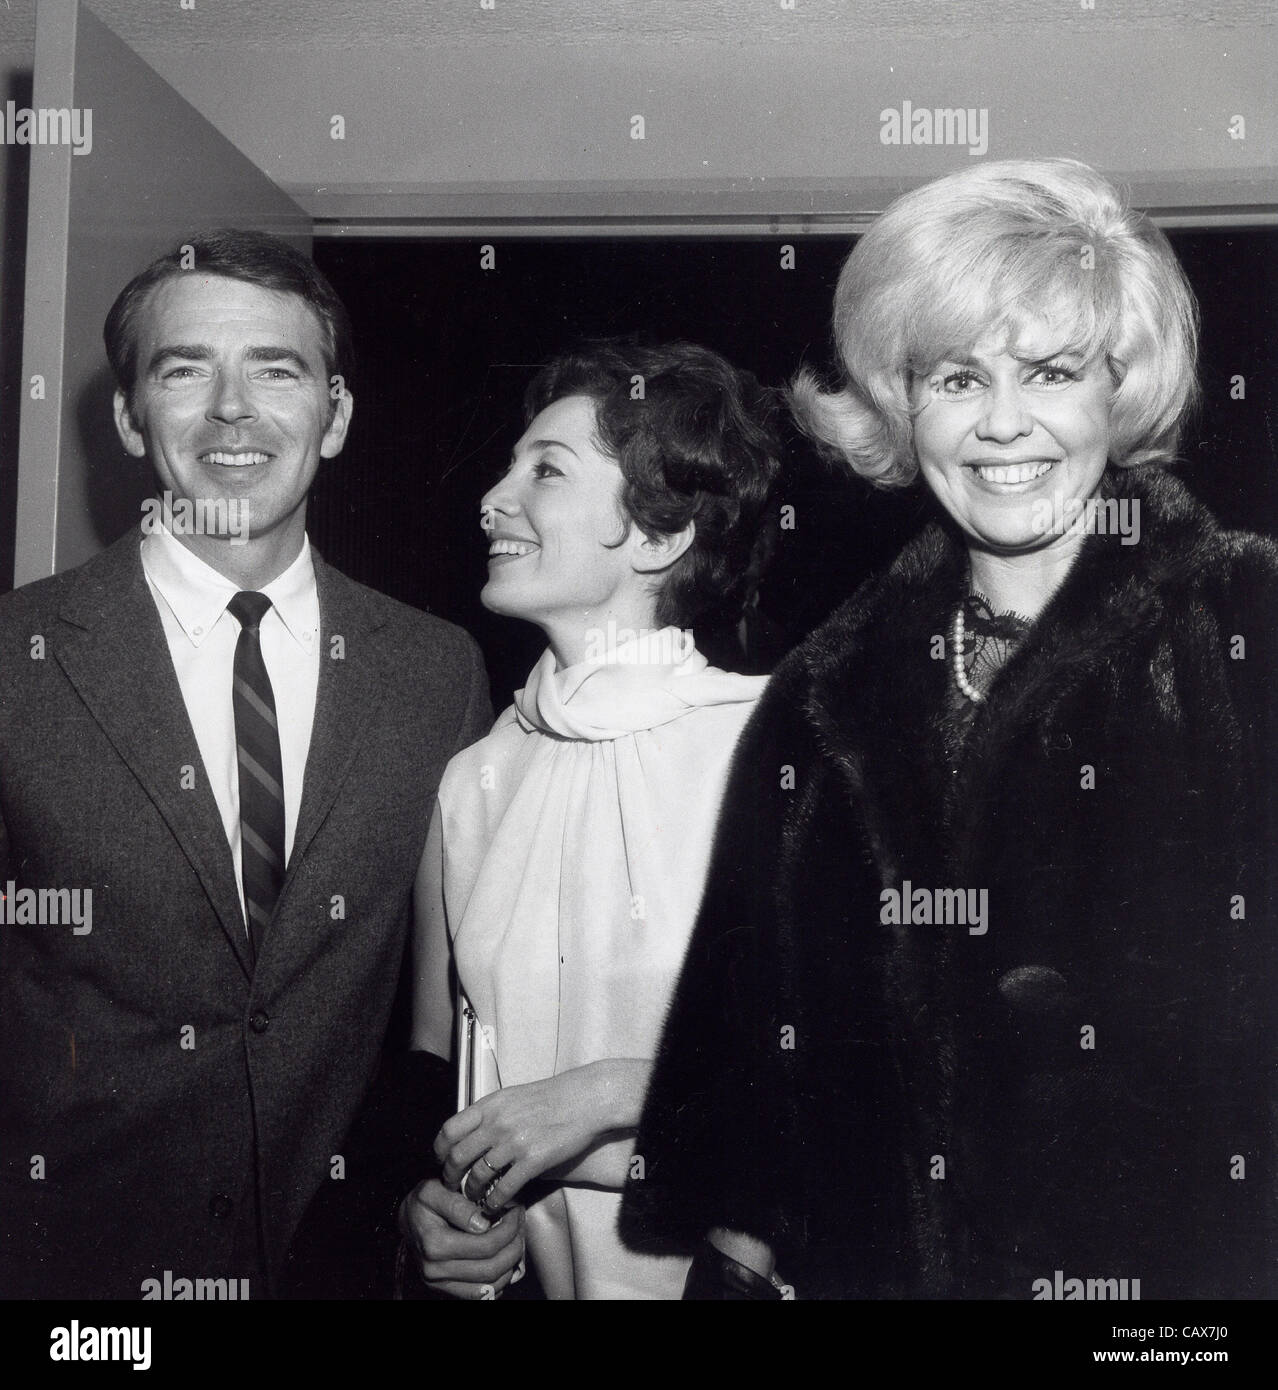 Ken Berry With Wife Jackie Joseph At Backstage Of Los